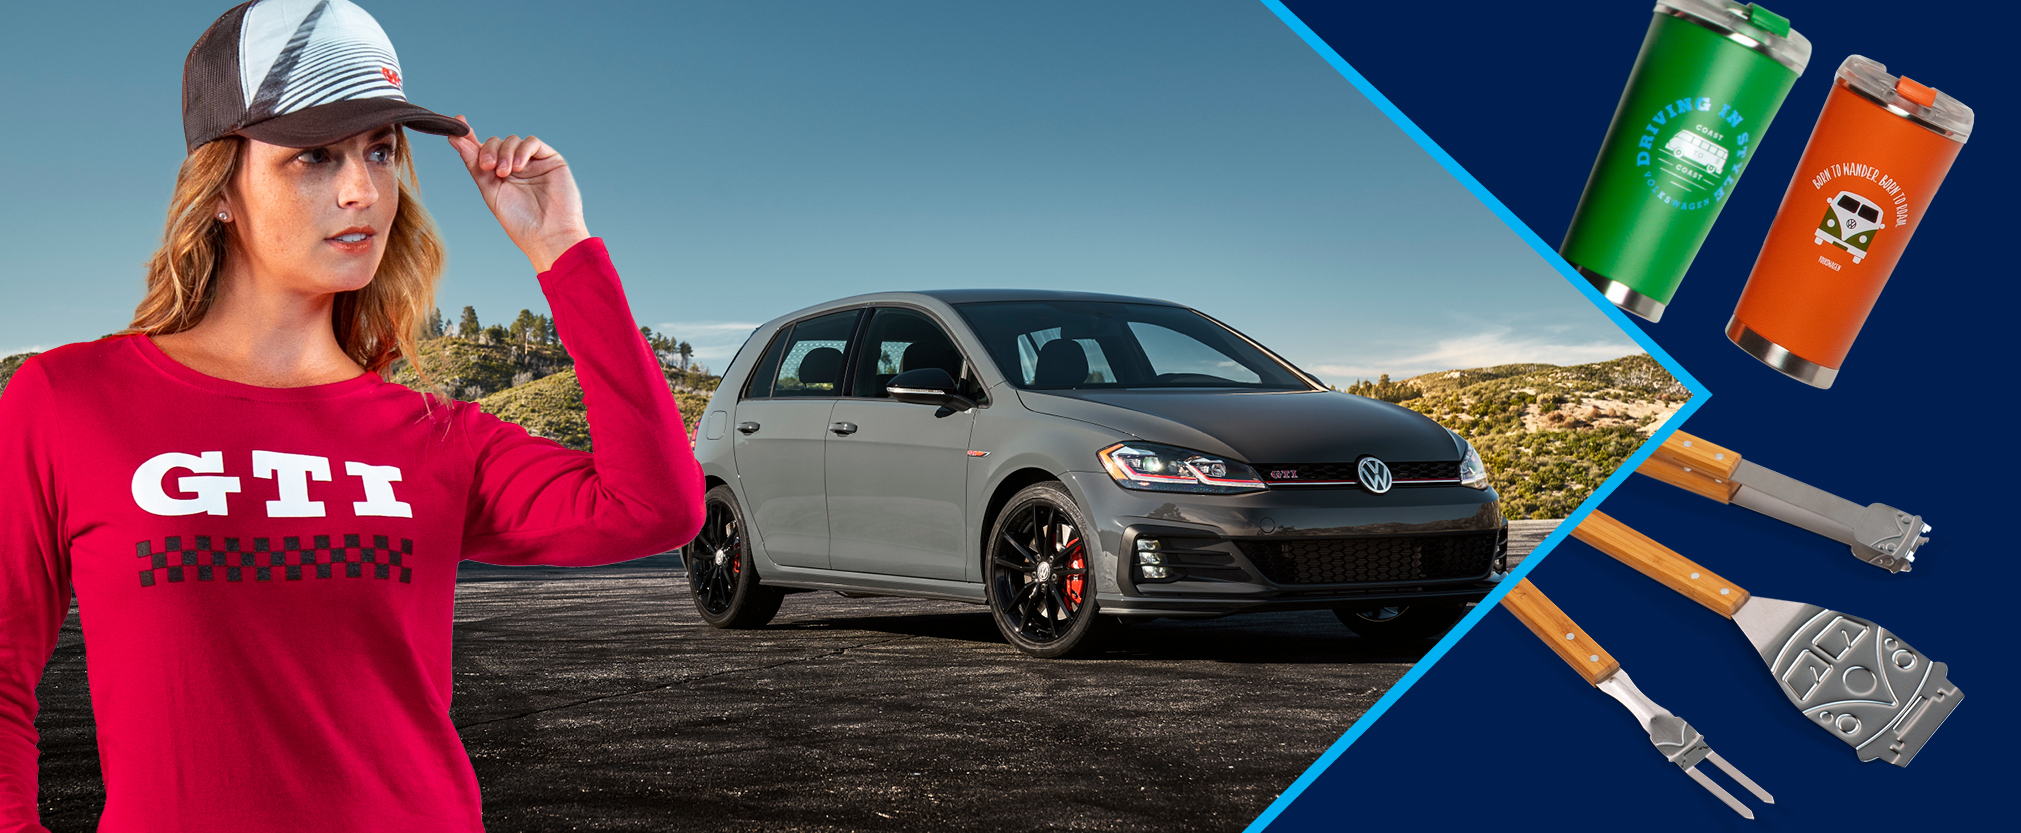 Get complimentary shipping on orders over $2514 with promo code VWDG2020 at checkout